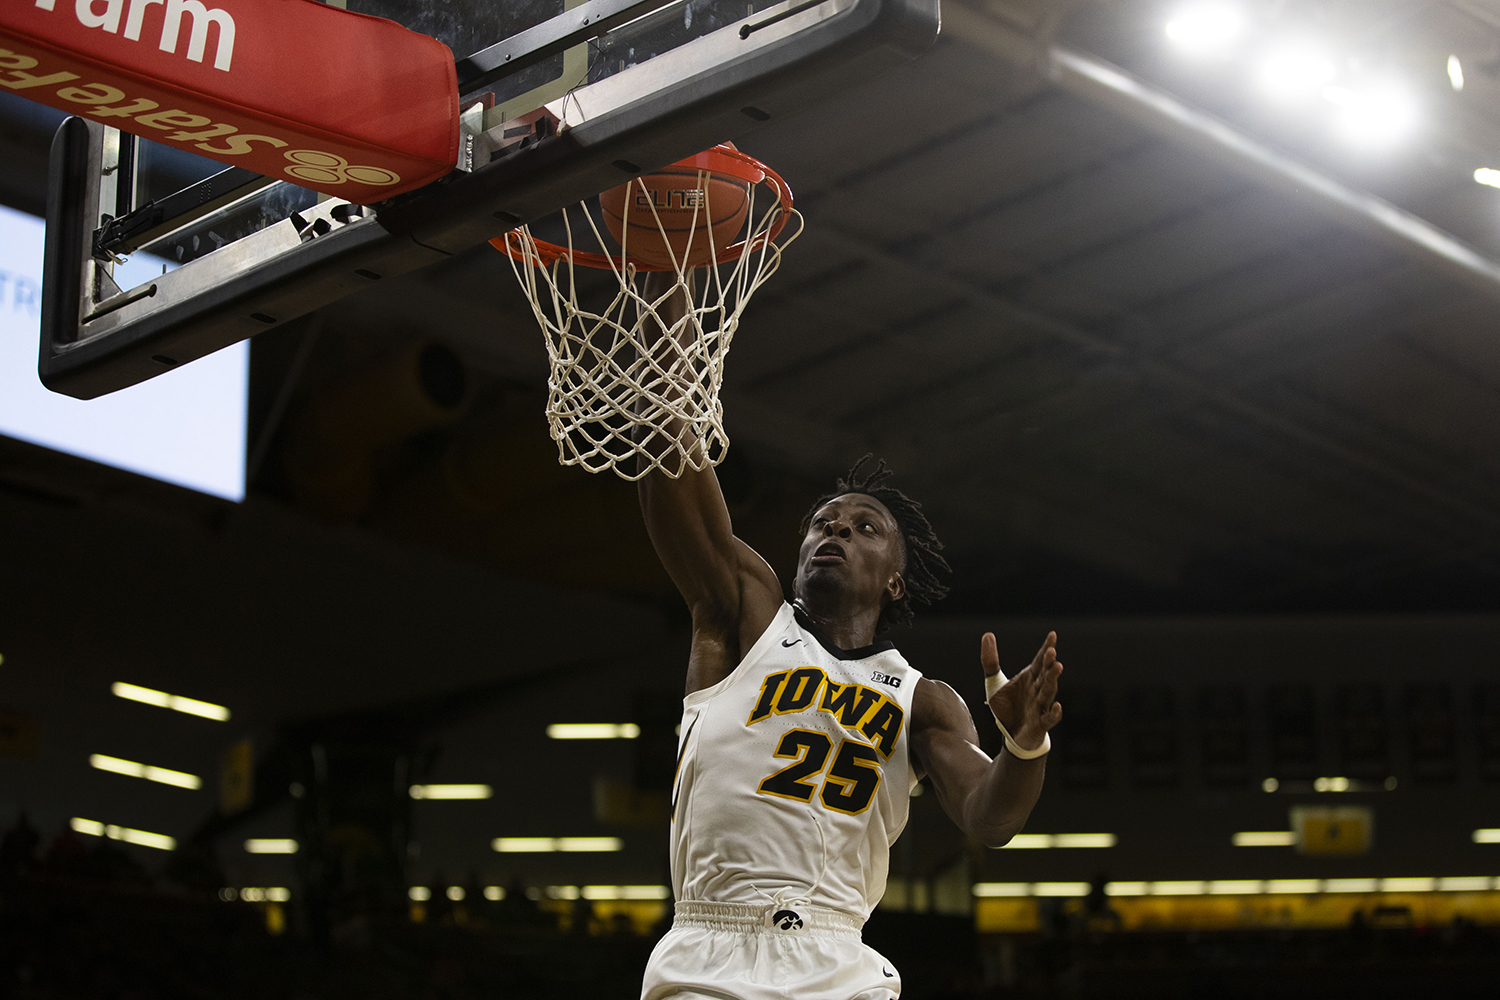 Iowa forward Tyler Cook dunks the ball during the Iowa/Guilford College basketball game at Carver-Hawkeye Arena on Sunday, Nov. 4, 2018. The Hawkeyes defeated the Quakers, 103-46. (Lily Smith/The Daily Iowan)